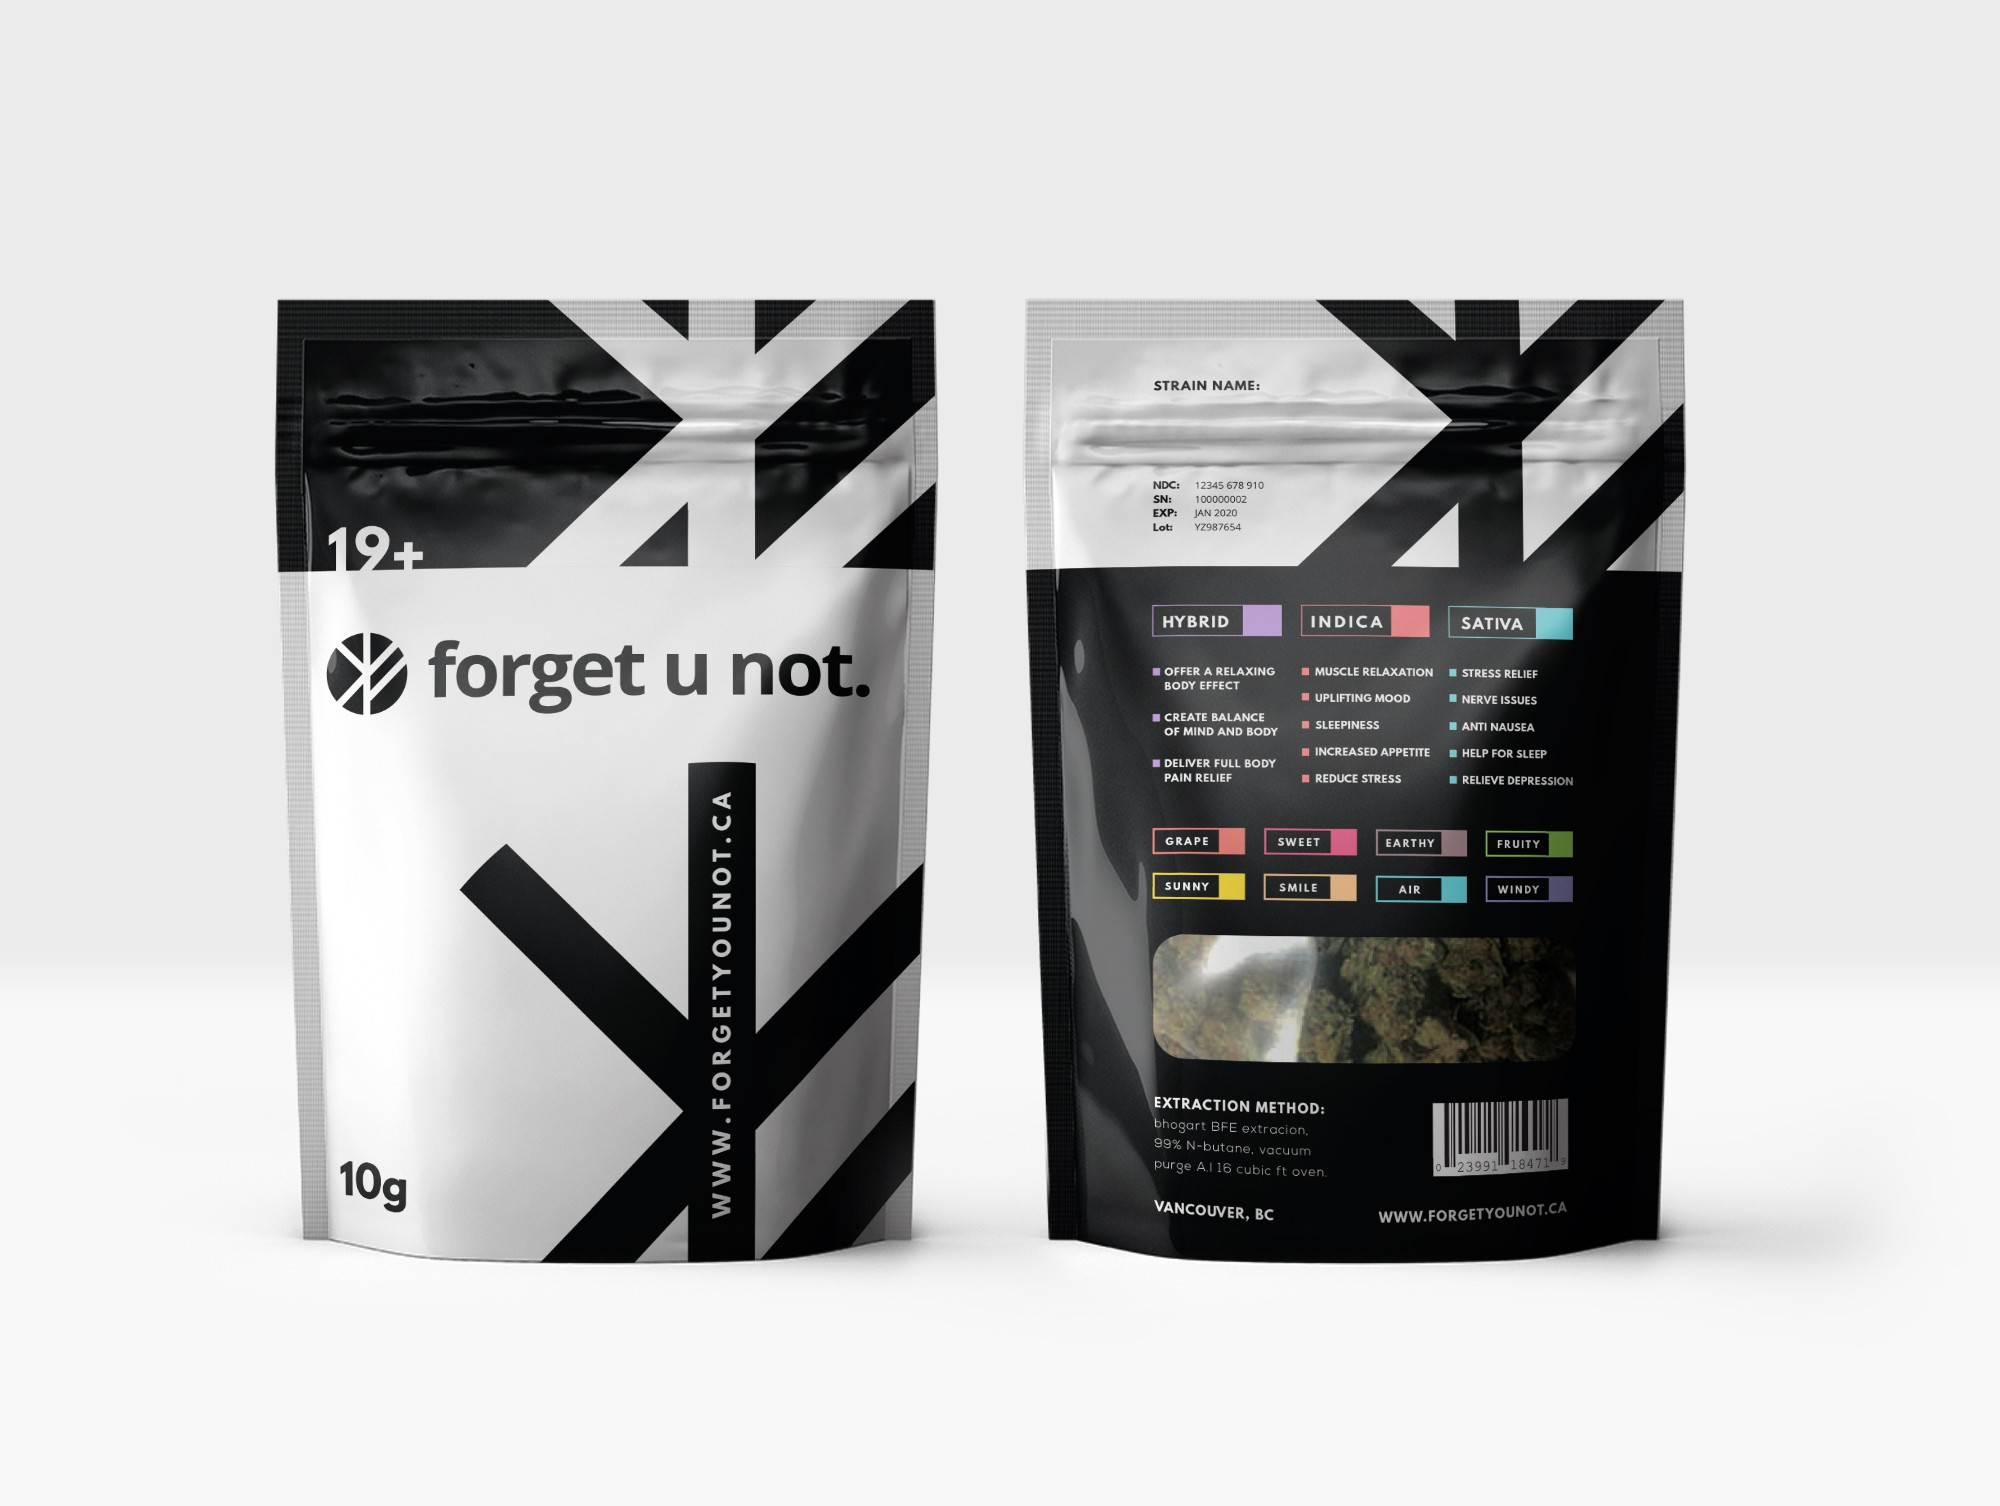 New Bag for Modern Cannabis Company - Forgetunot